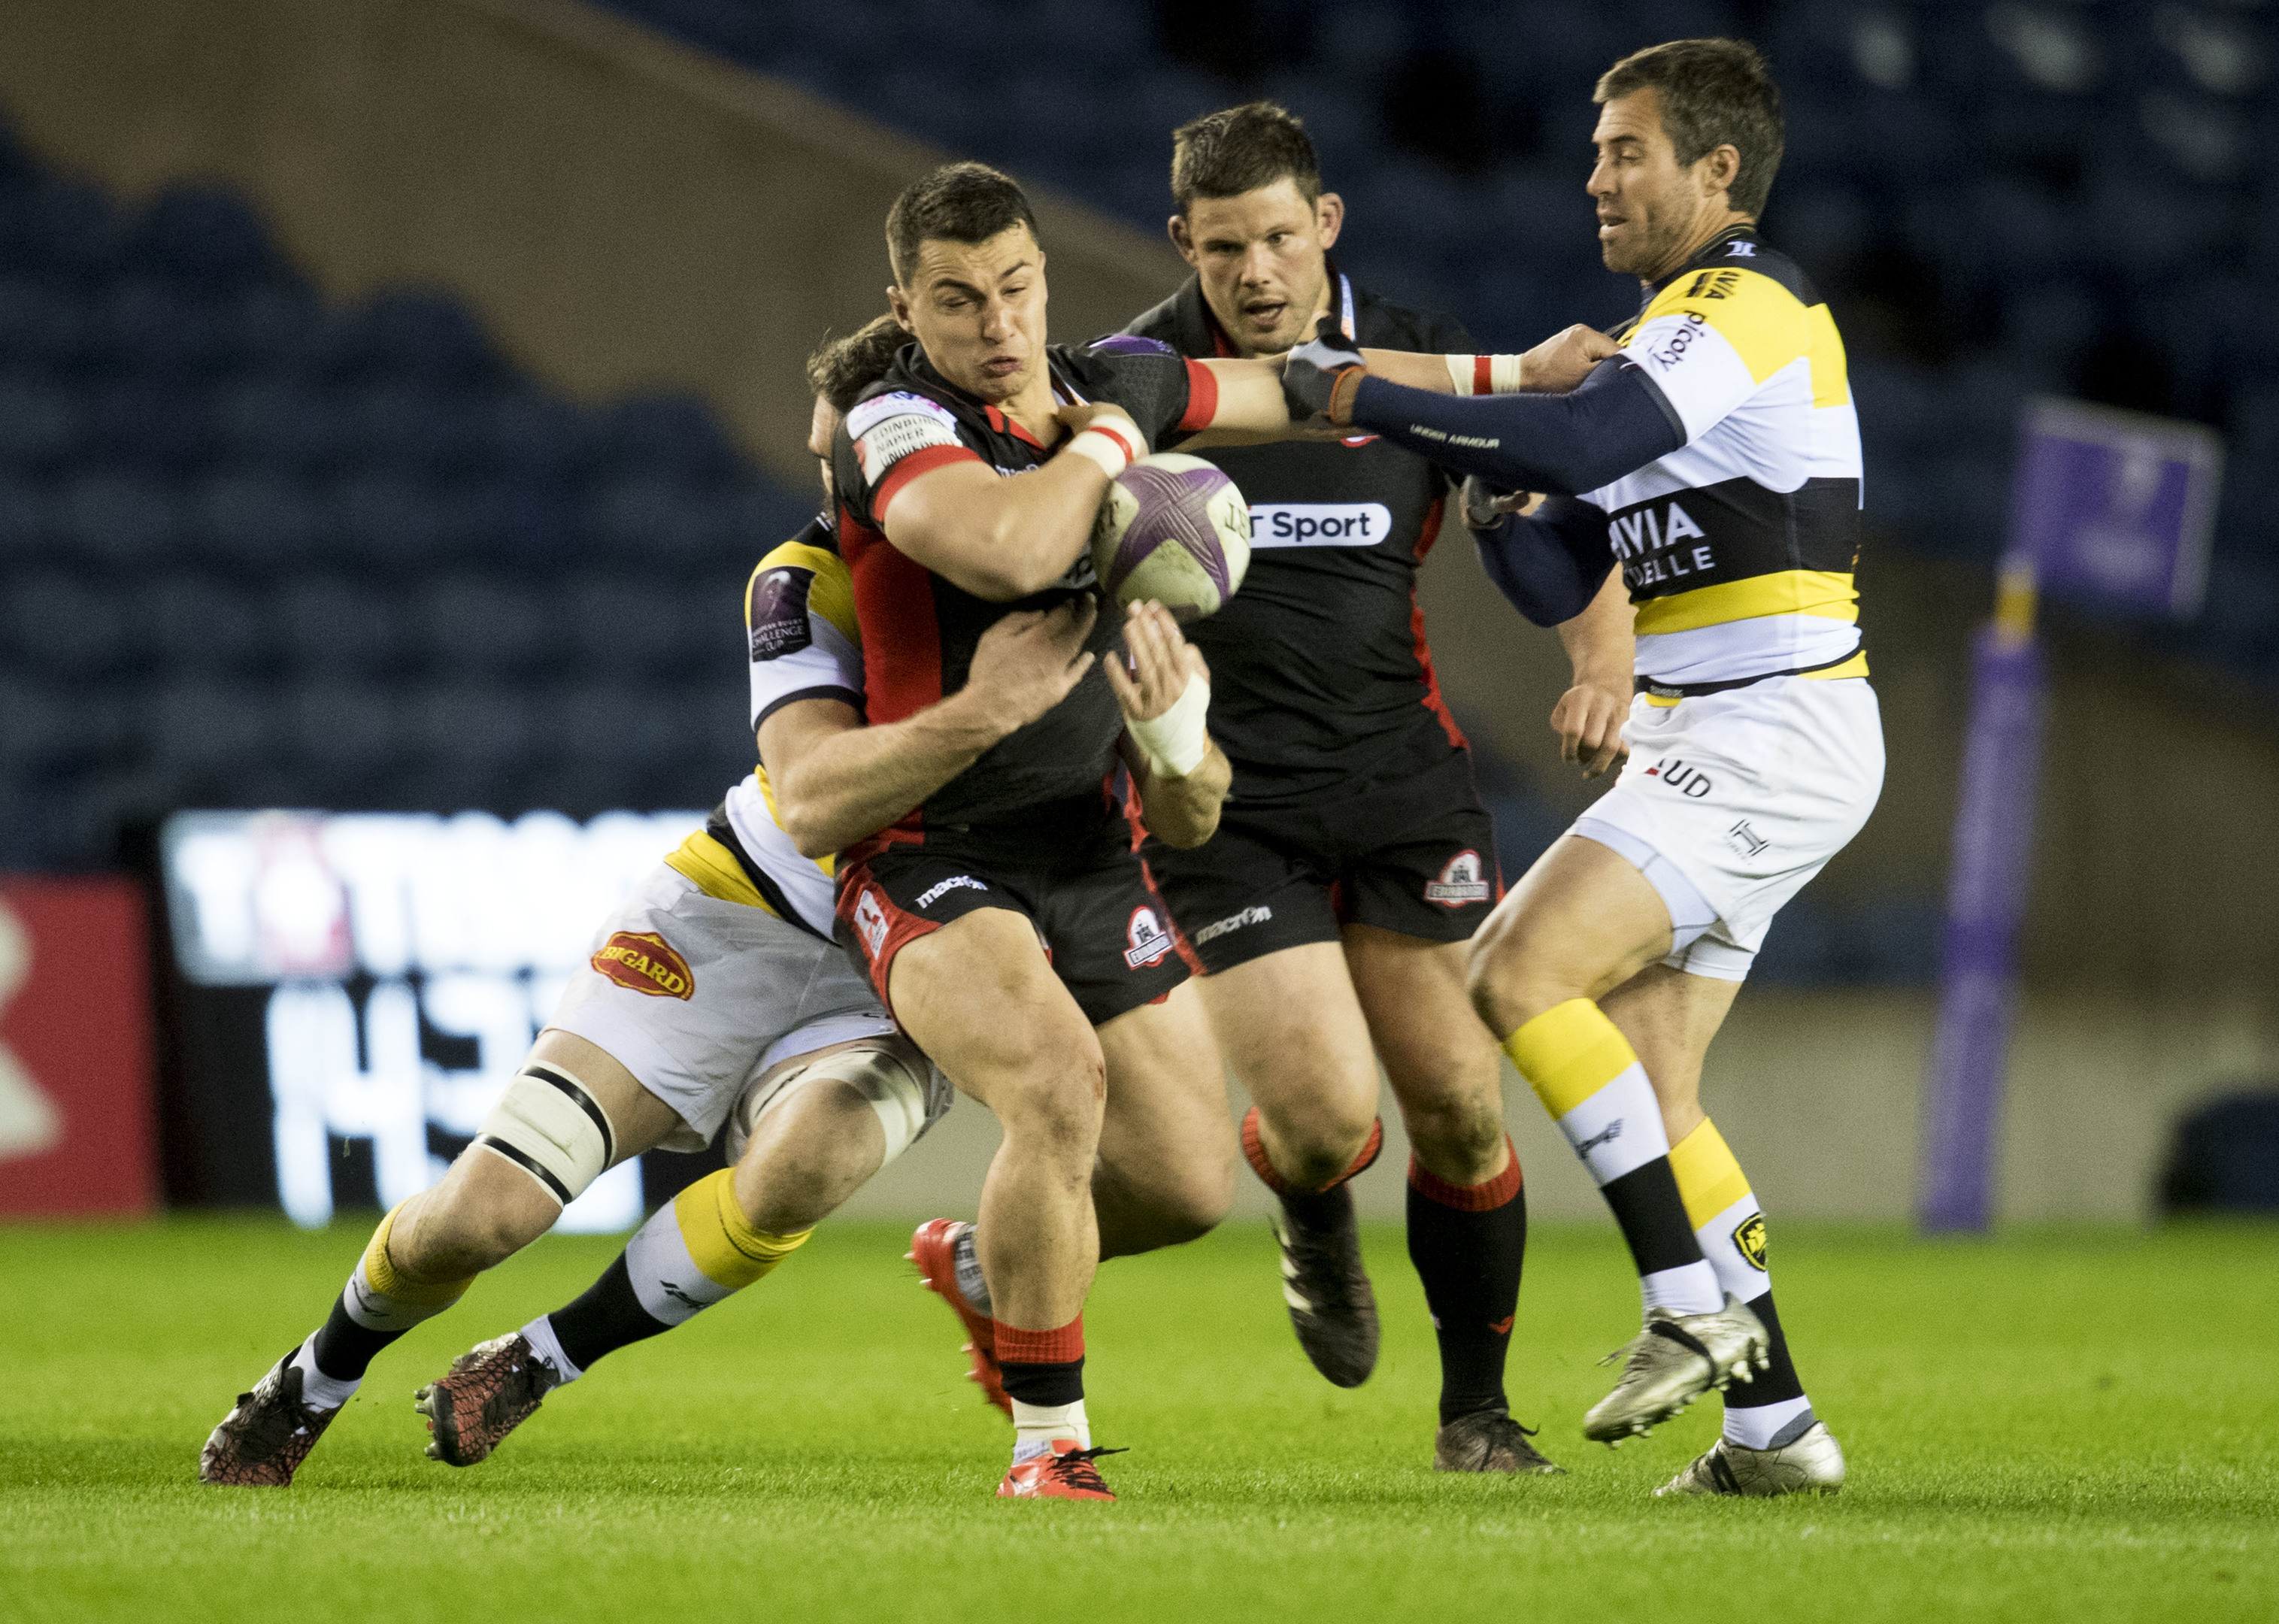 Damien Hoyland has been one of the few bright spots in Edinburgh's poor season.